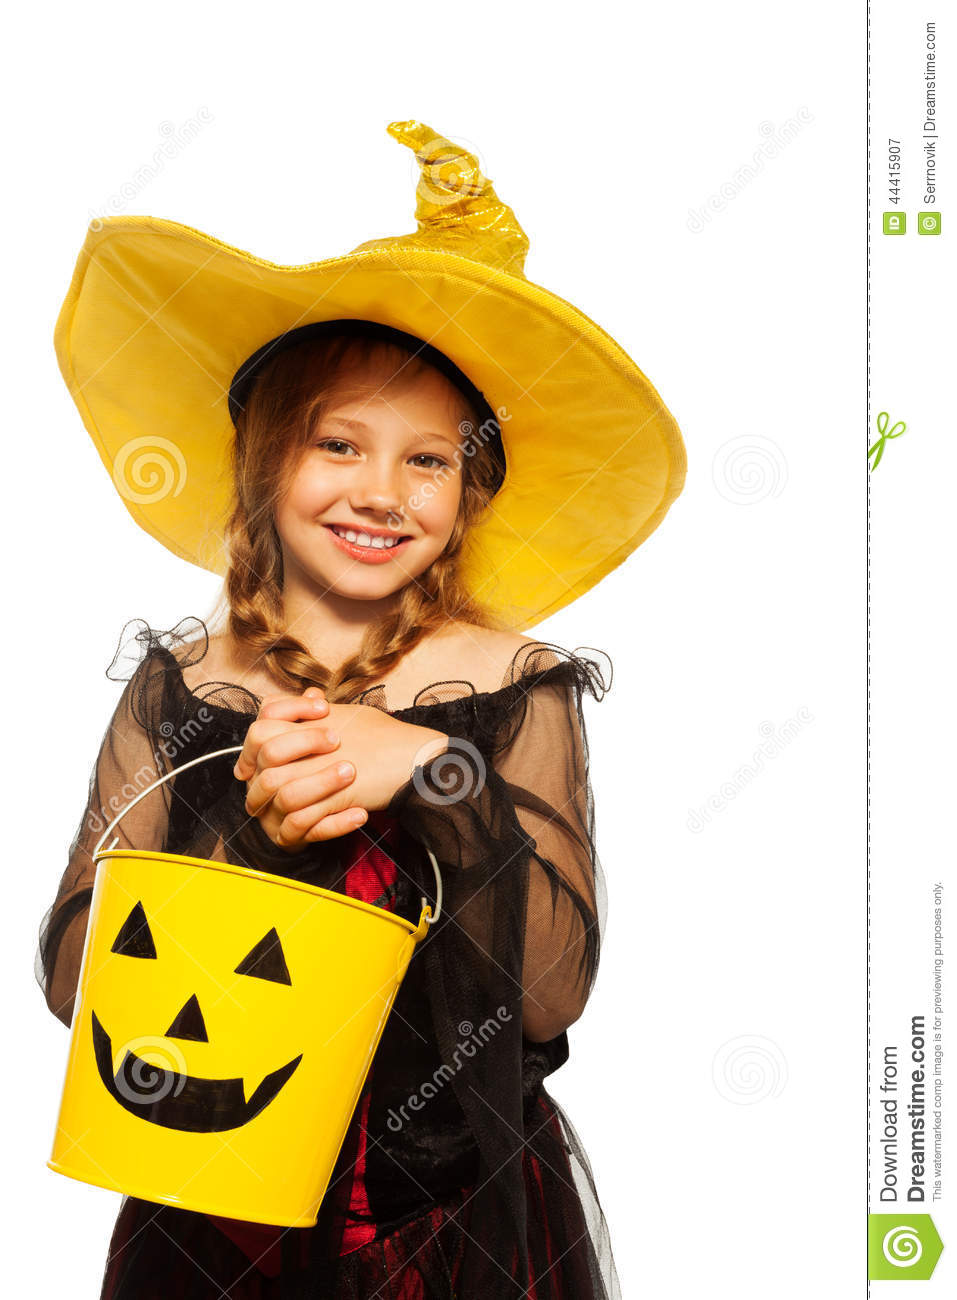 Girl In Witch Costume And Spooky Halloween Bucket Stock Image